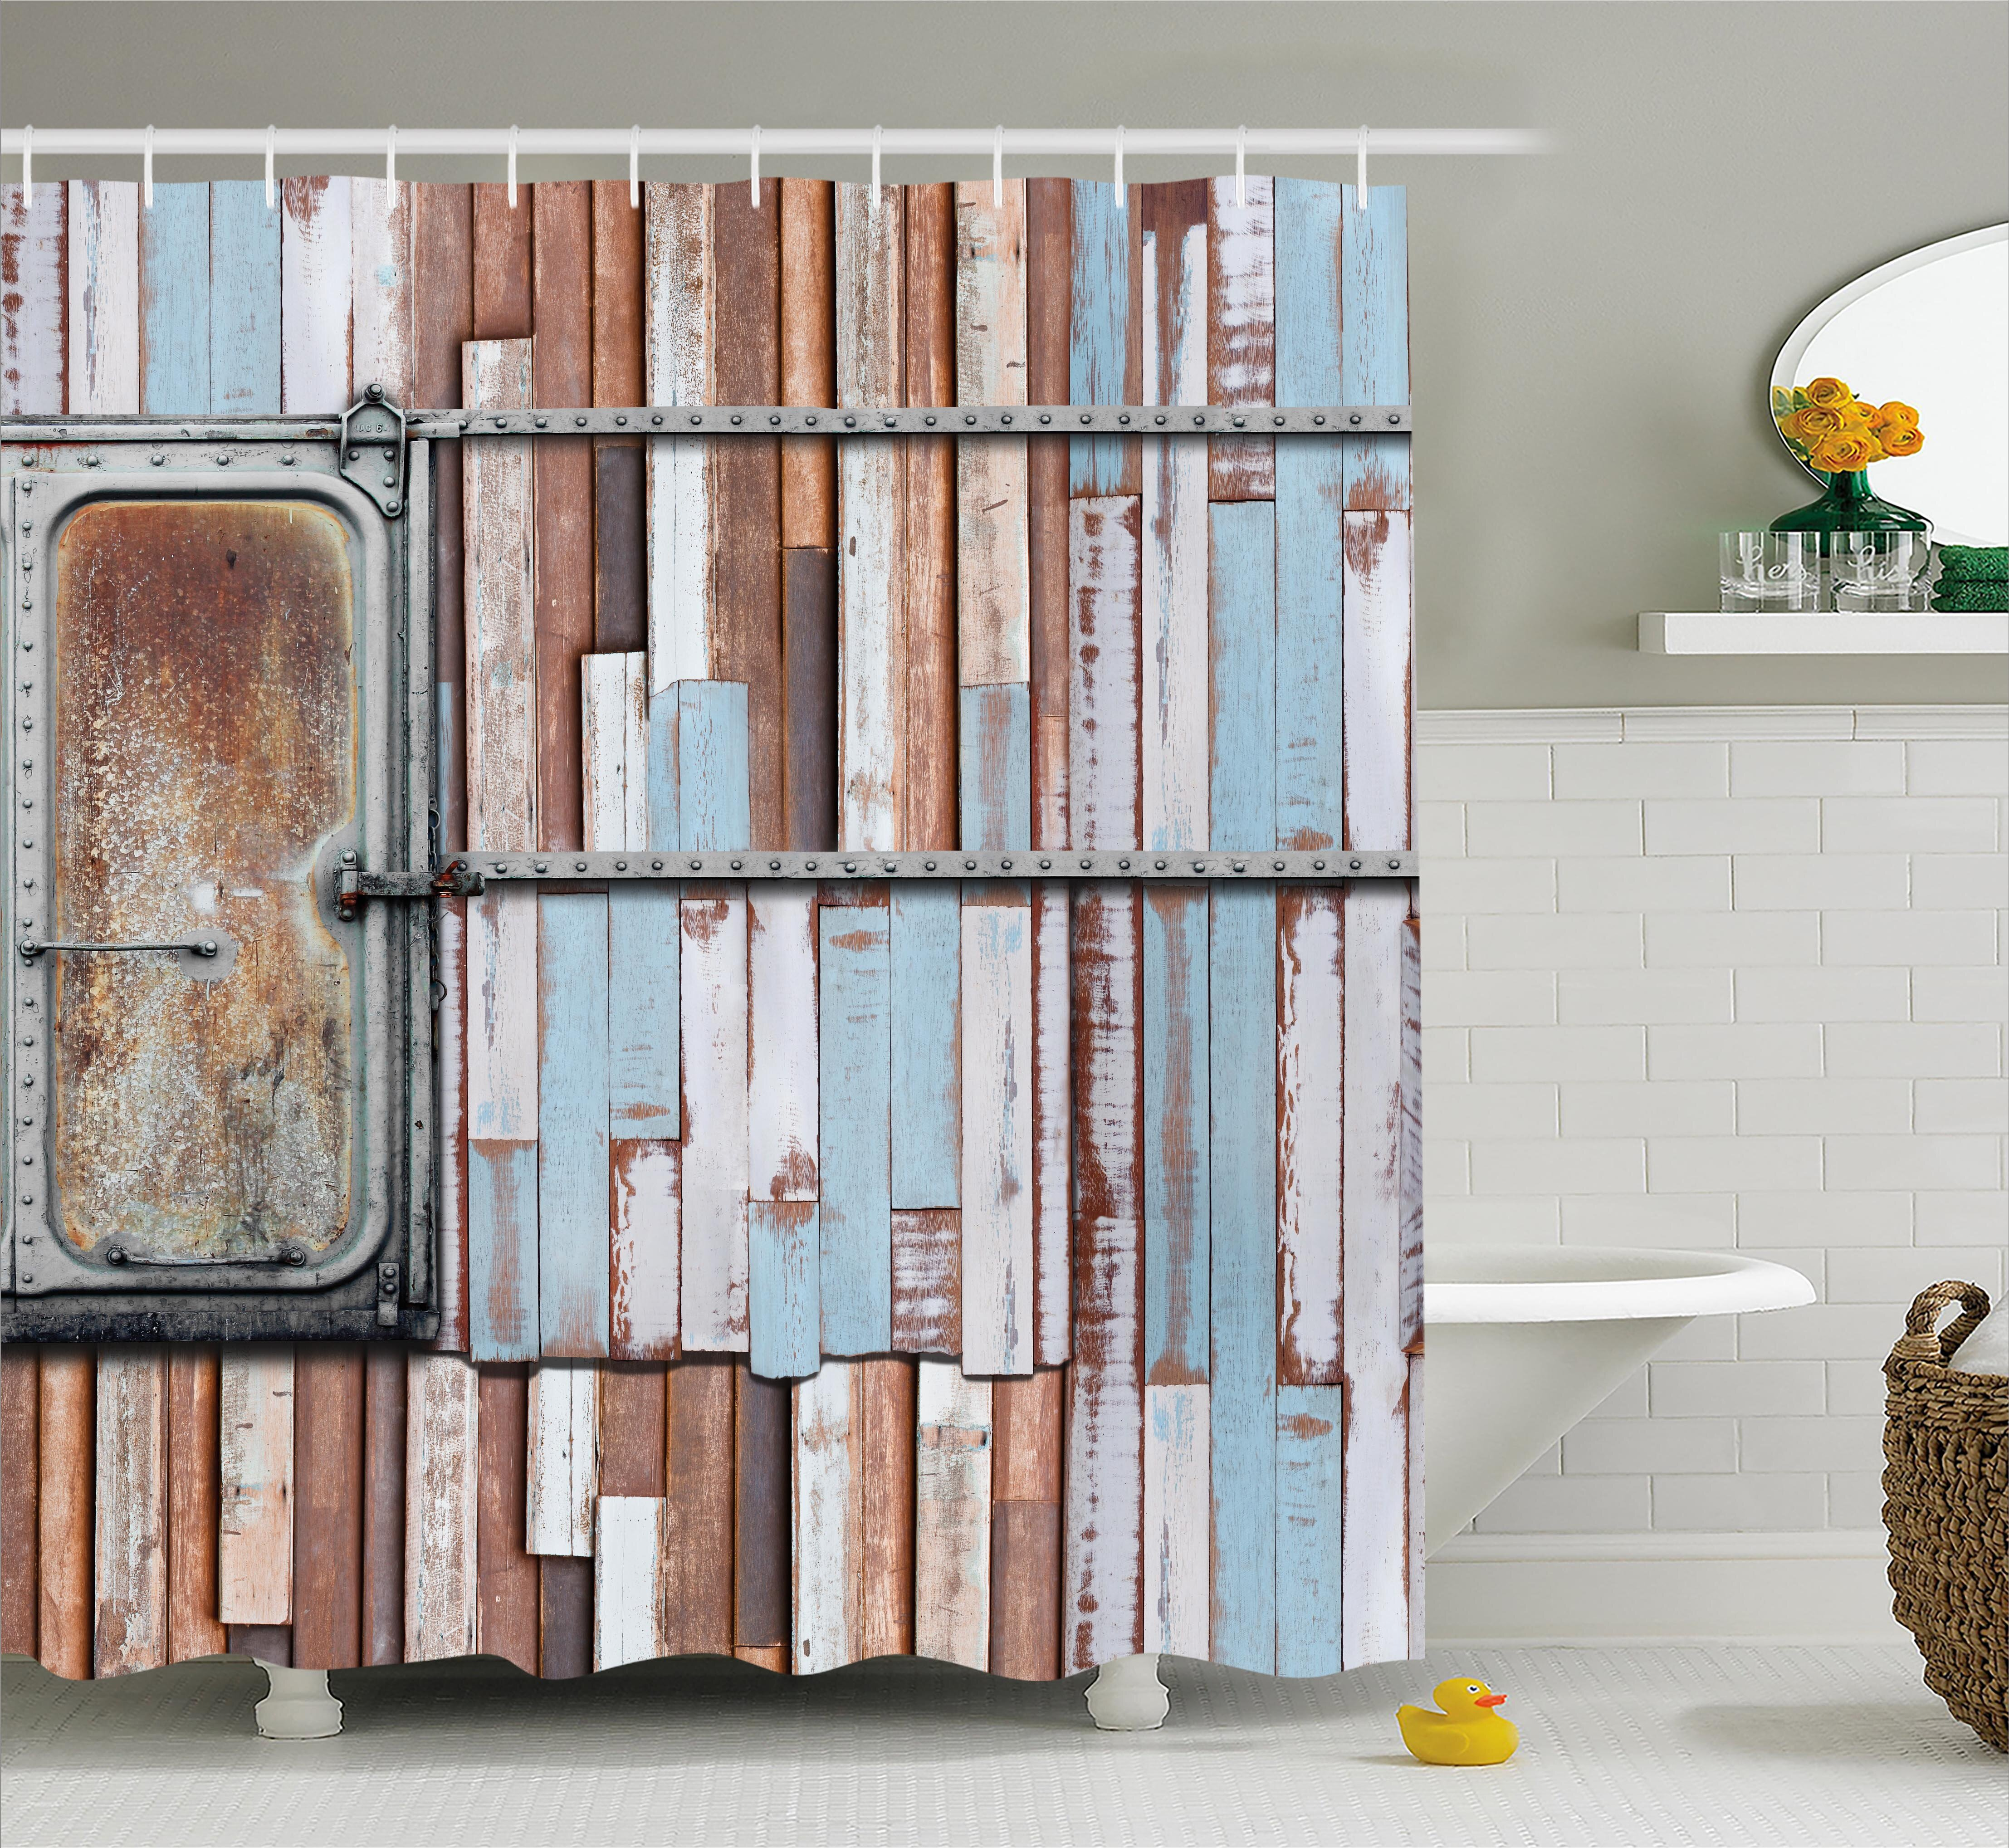 Spears Wooden Rustic Colored Rusty Planks With Old Ship Door Marine Themed Artwork Single Shower Curtain